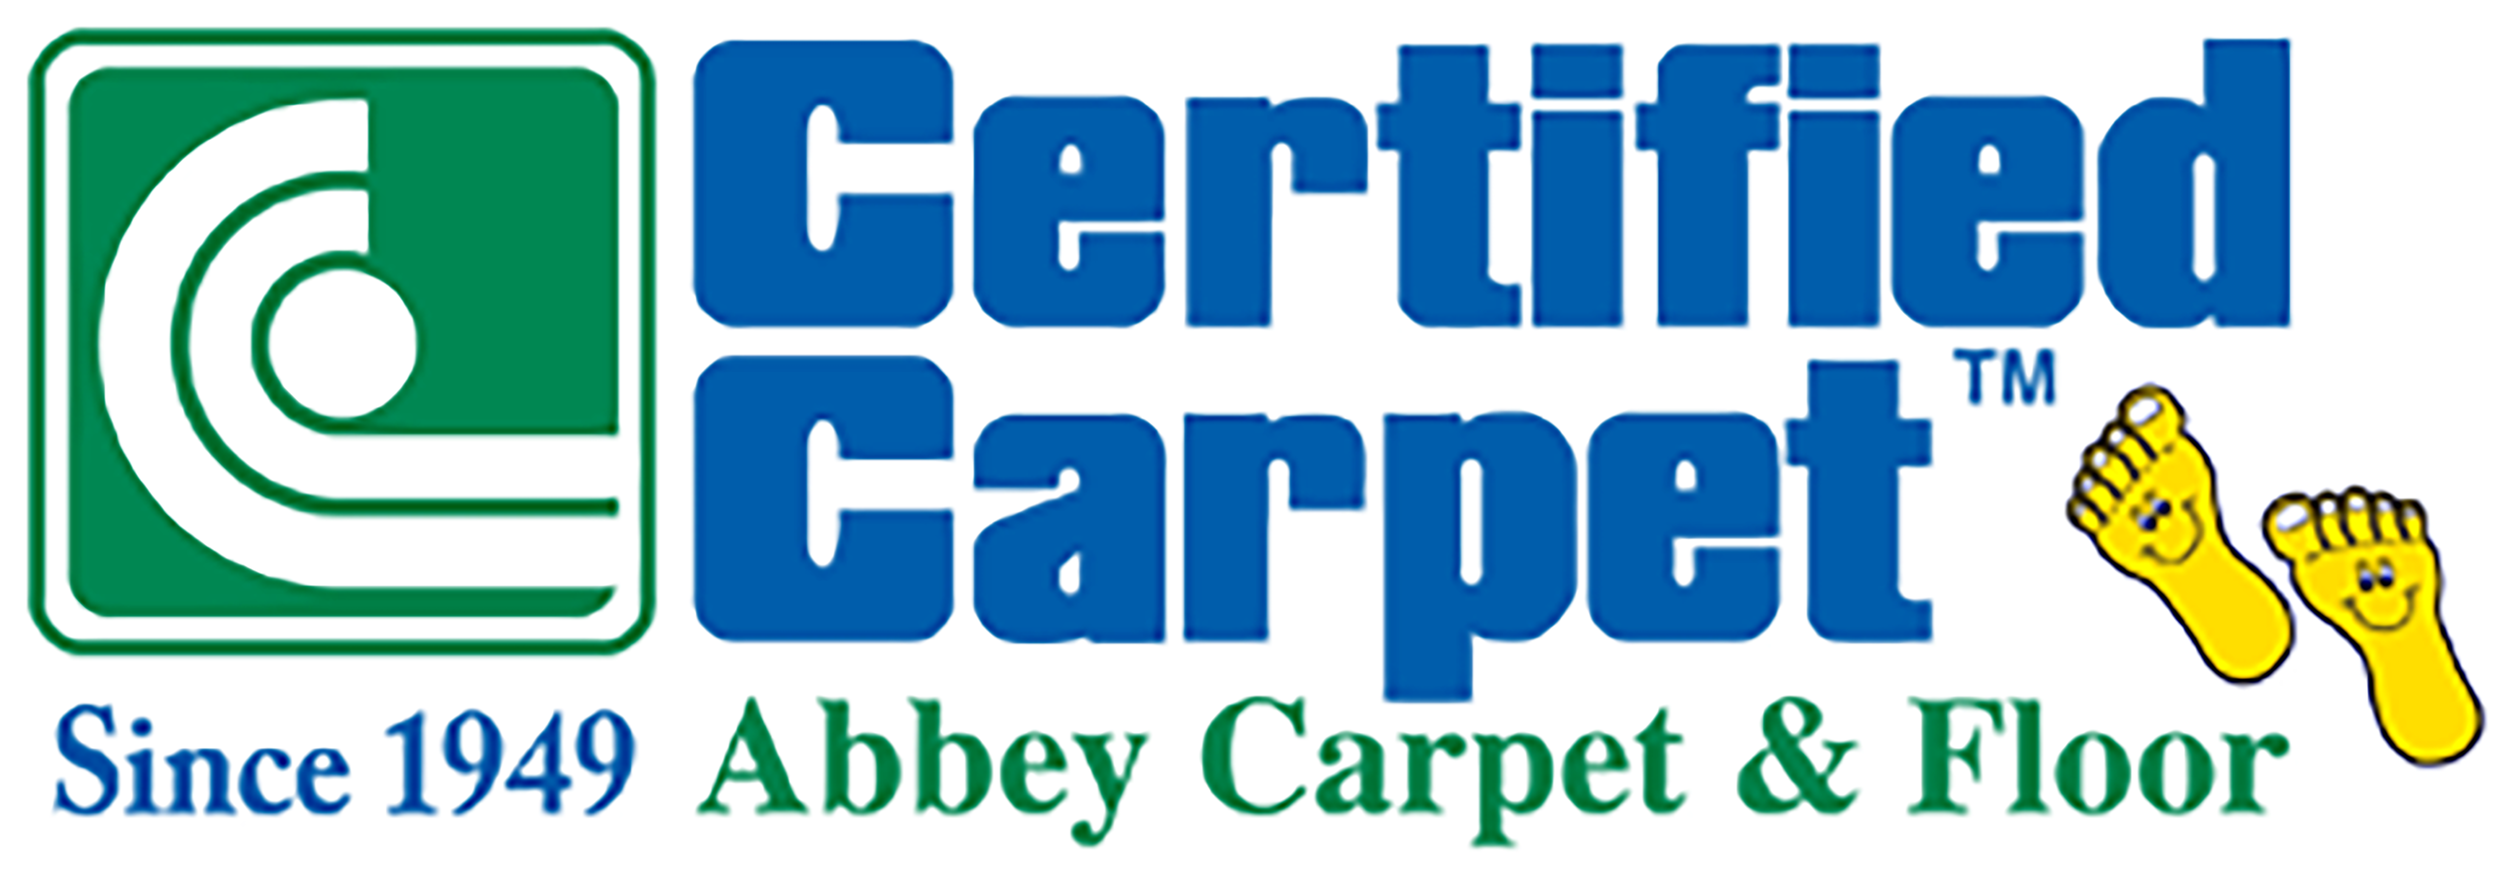 Certified Carpet logo-stacked-2.png